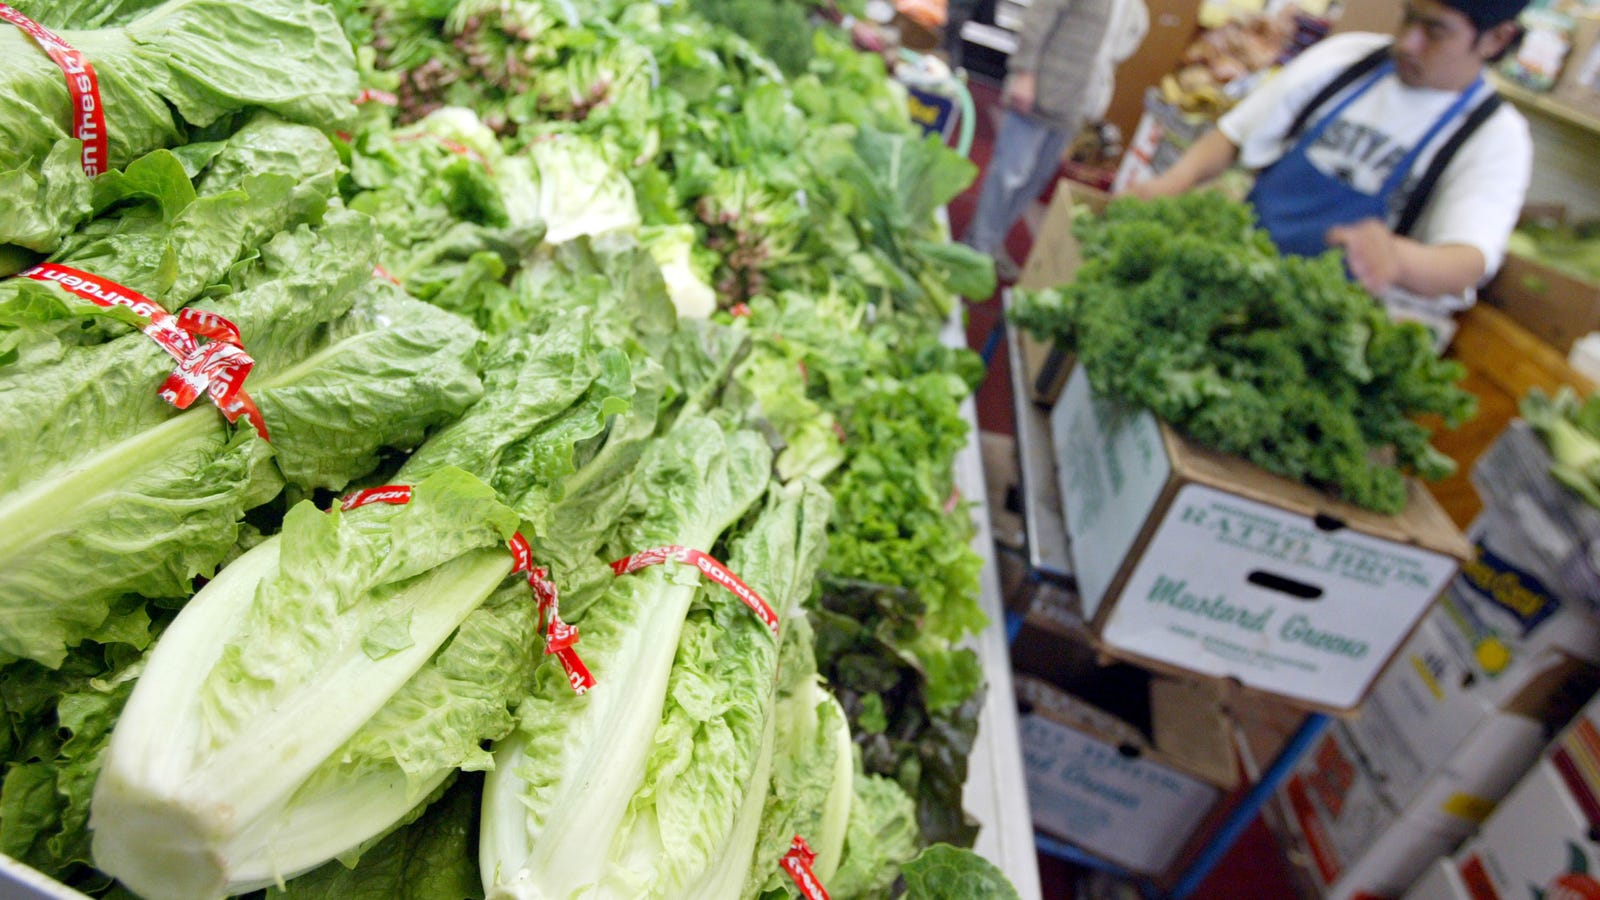 CDC: Throw Your Romaine Lettuce in the Trash Right Now